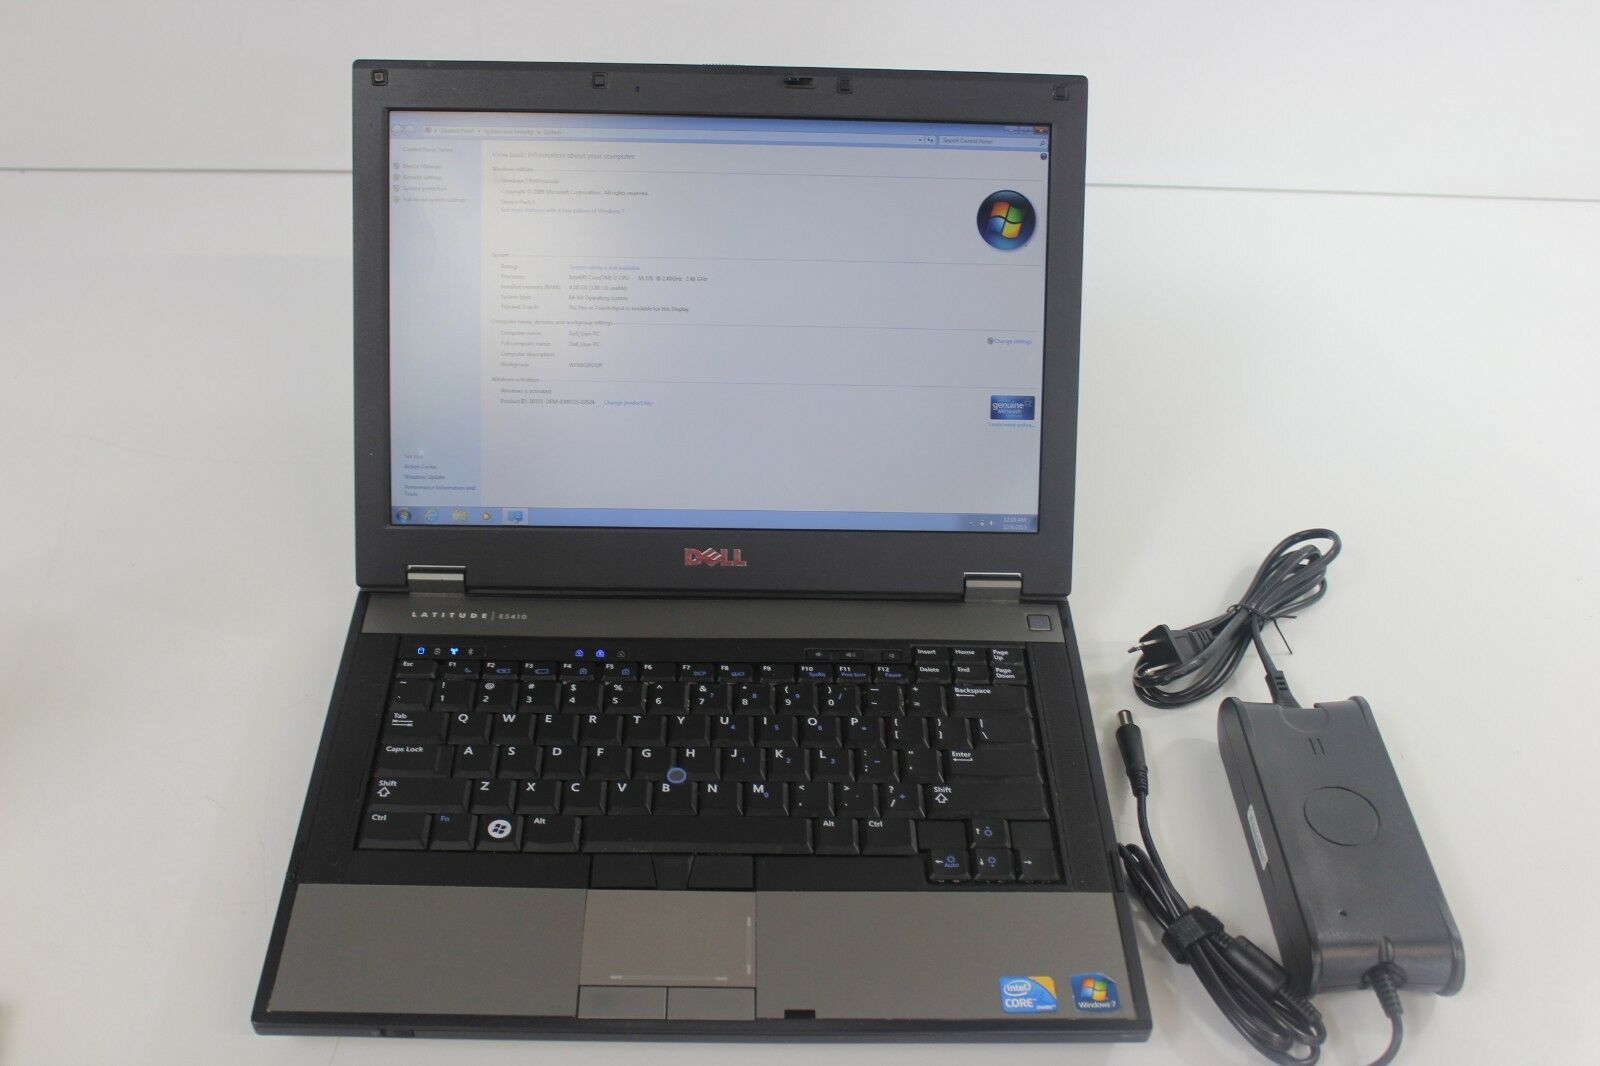 Dell Latitude E5410 Laptop Intel Core i3 CPU M370 @ 2.40 GHz 4GB RAM 250GB HDD